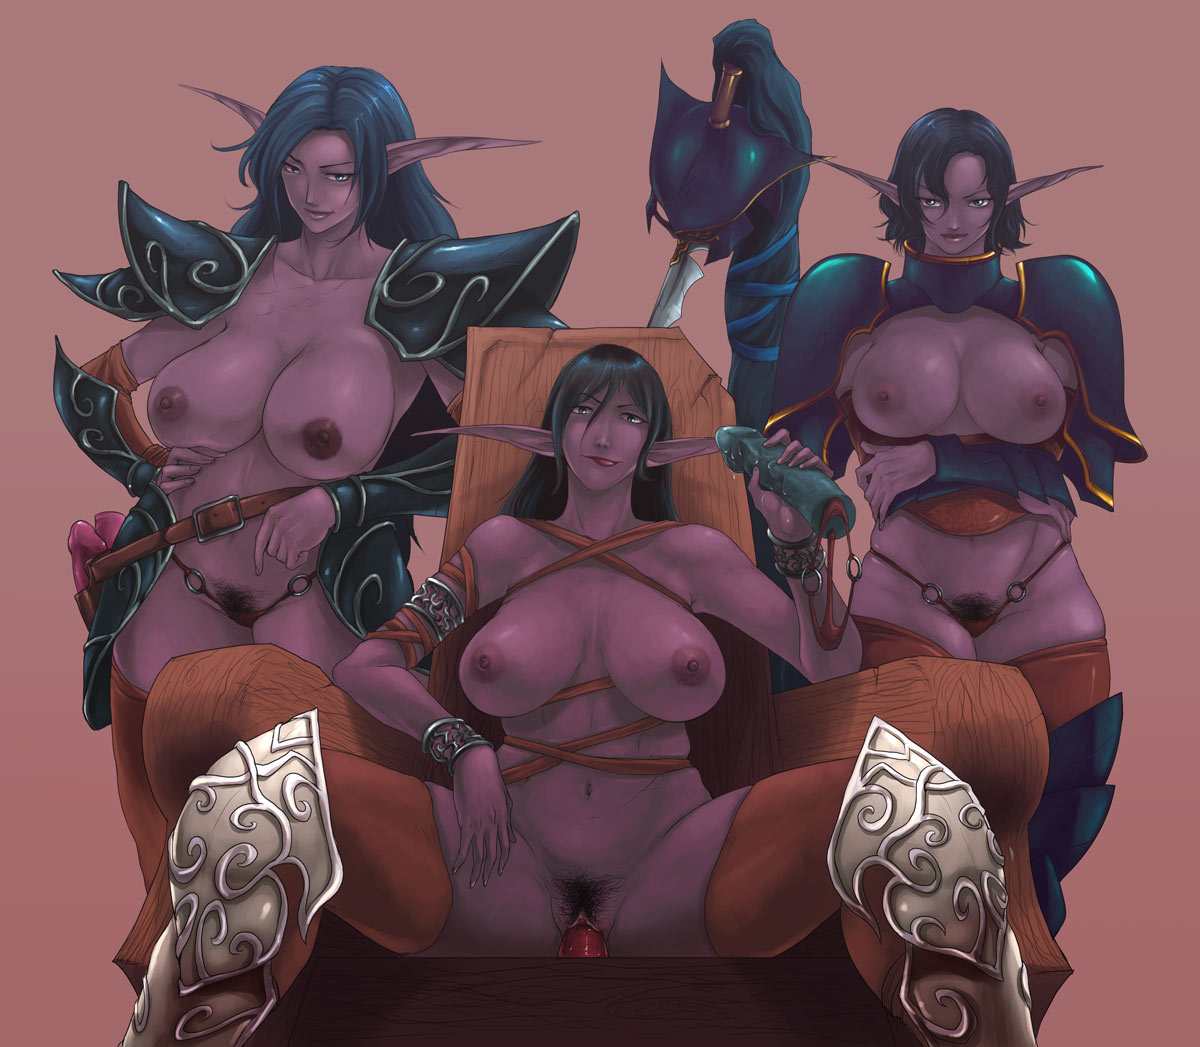 Foto porno warcraft 3 porn comic